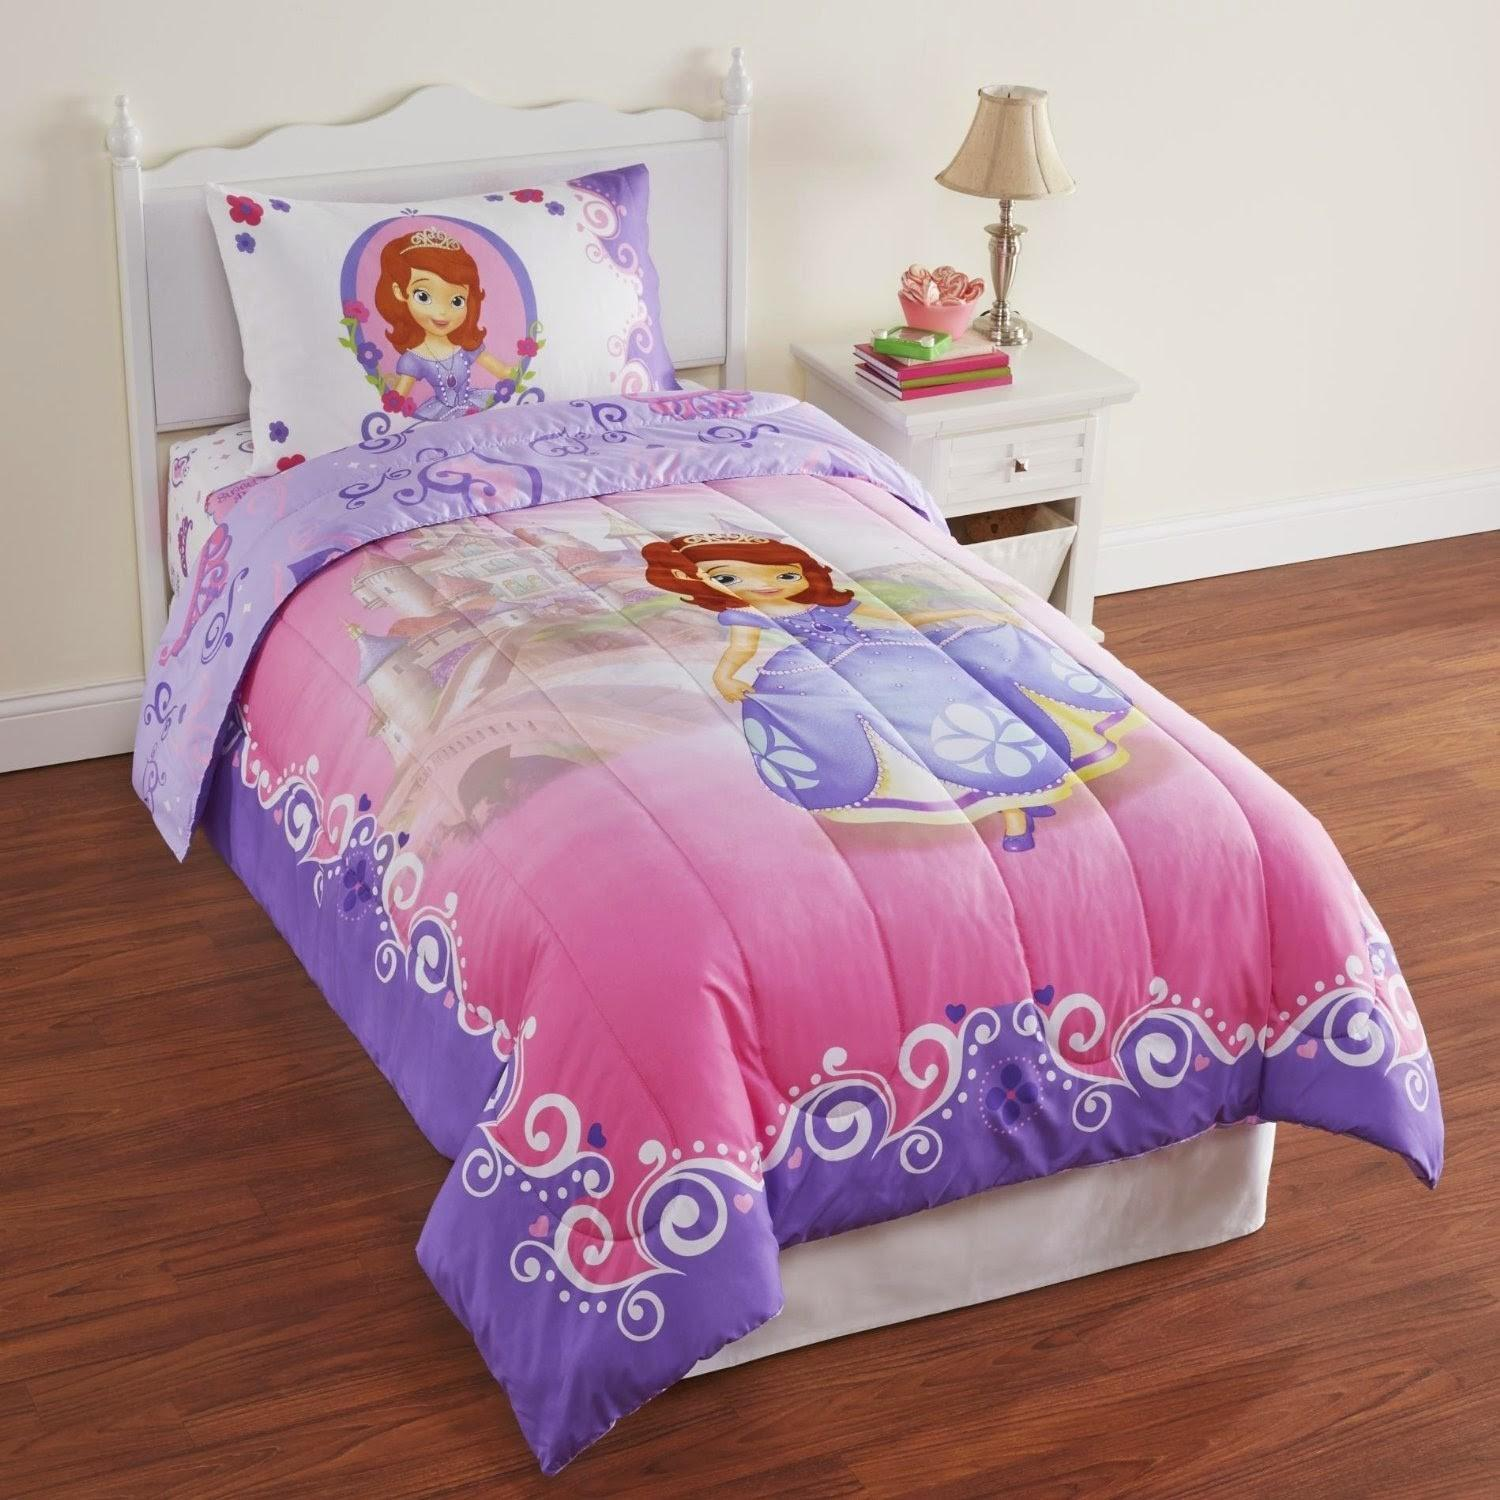 Bedroom Decor Ideas Designs Top Eight Princess Sofia